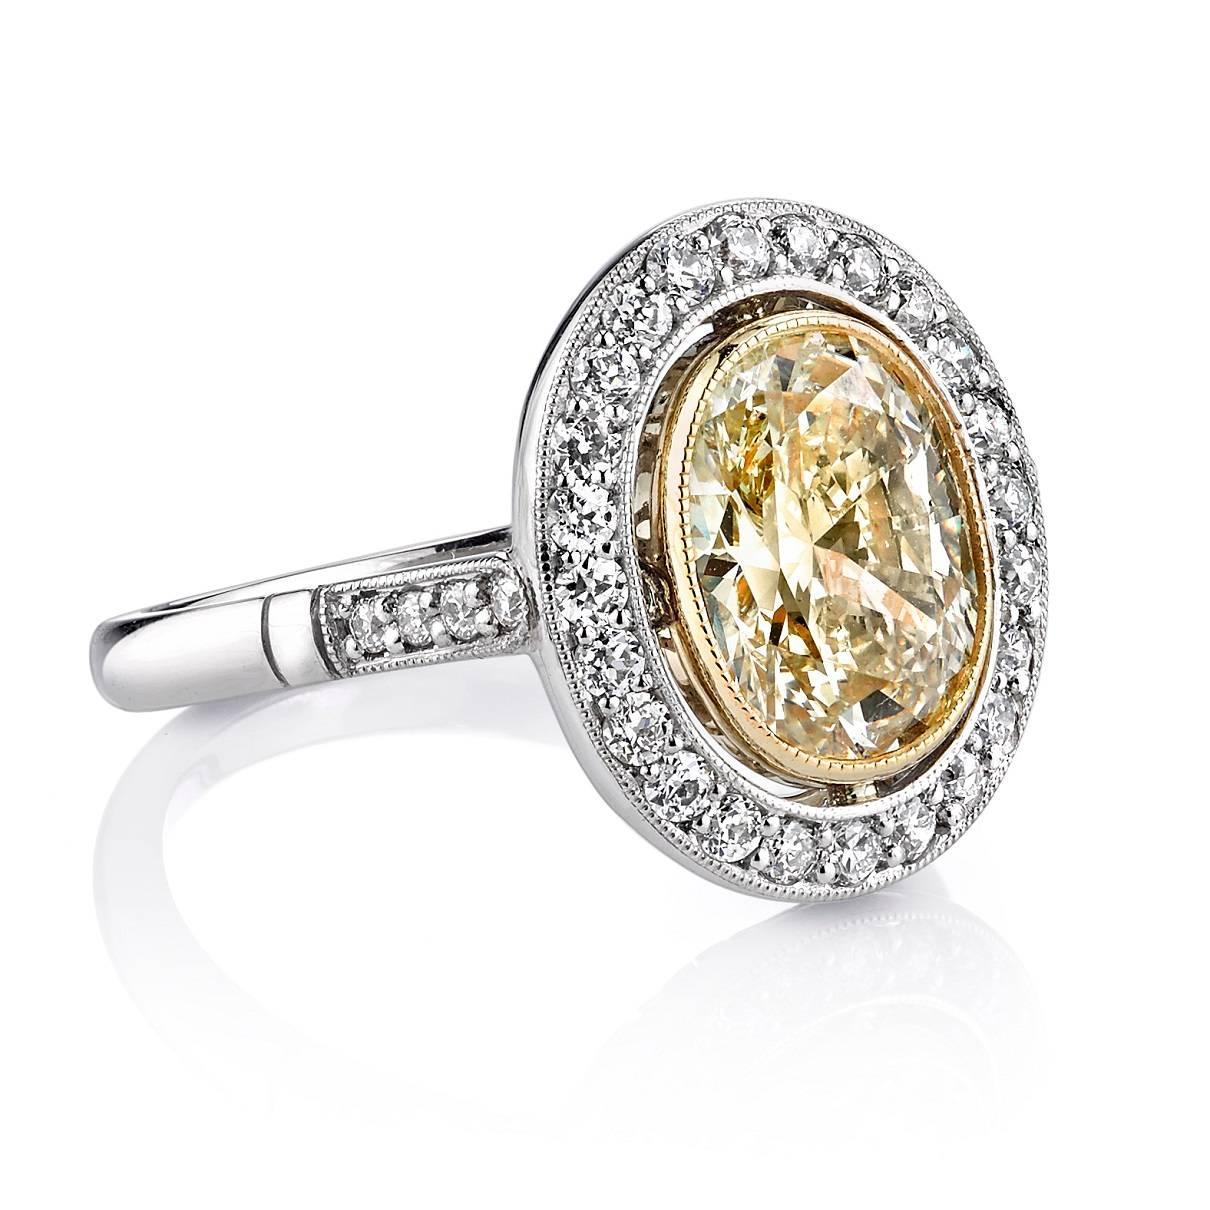 2 04 Carat Oval Diamond Gold Platinum Engagement Ring at 1stdibs